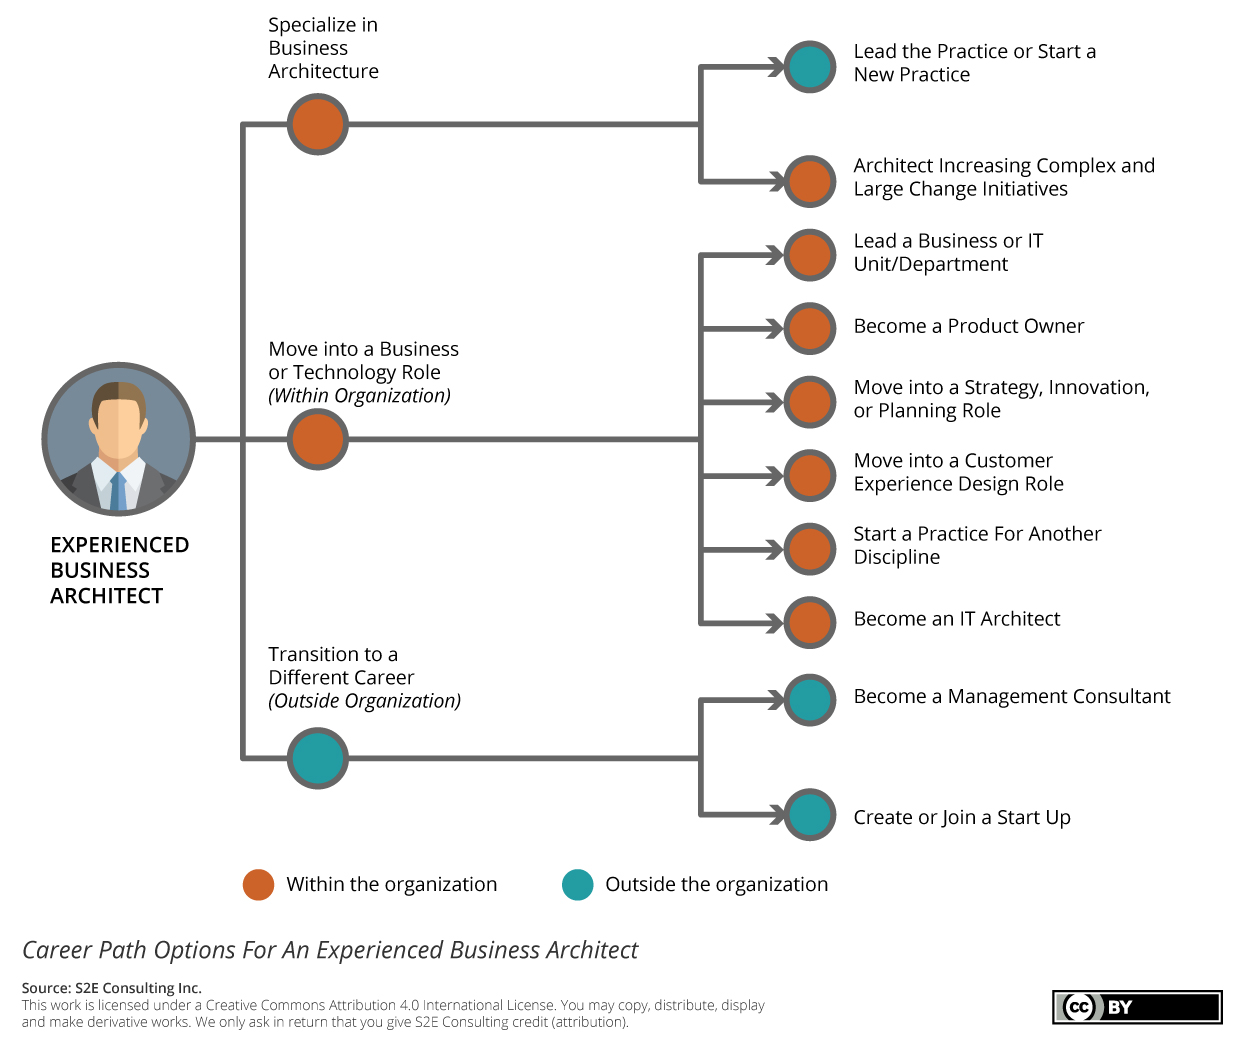 S2E Business Architecture Career Path Options